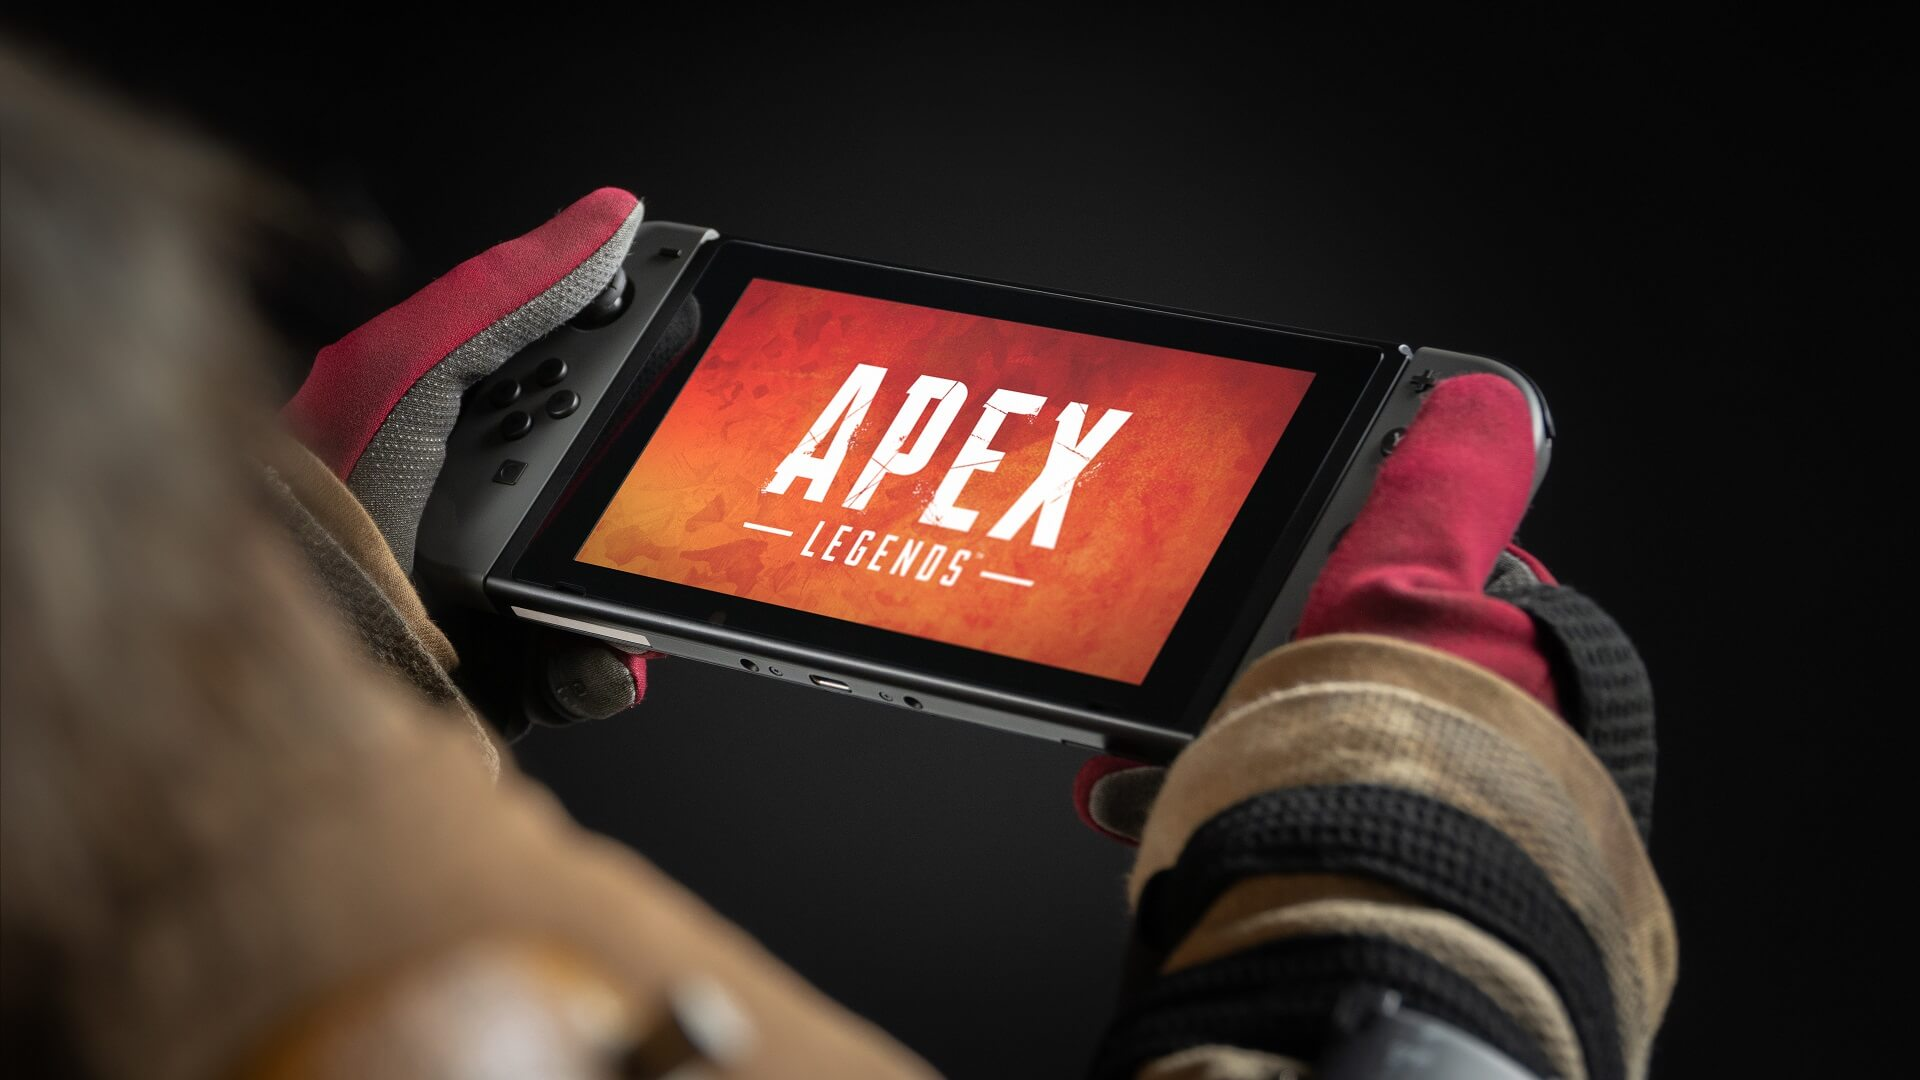 Apex Legends is Finally ESRB Rated for Nintendo Switch Release